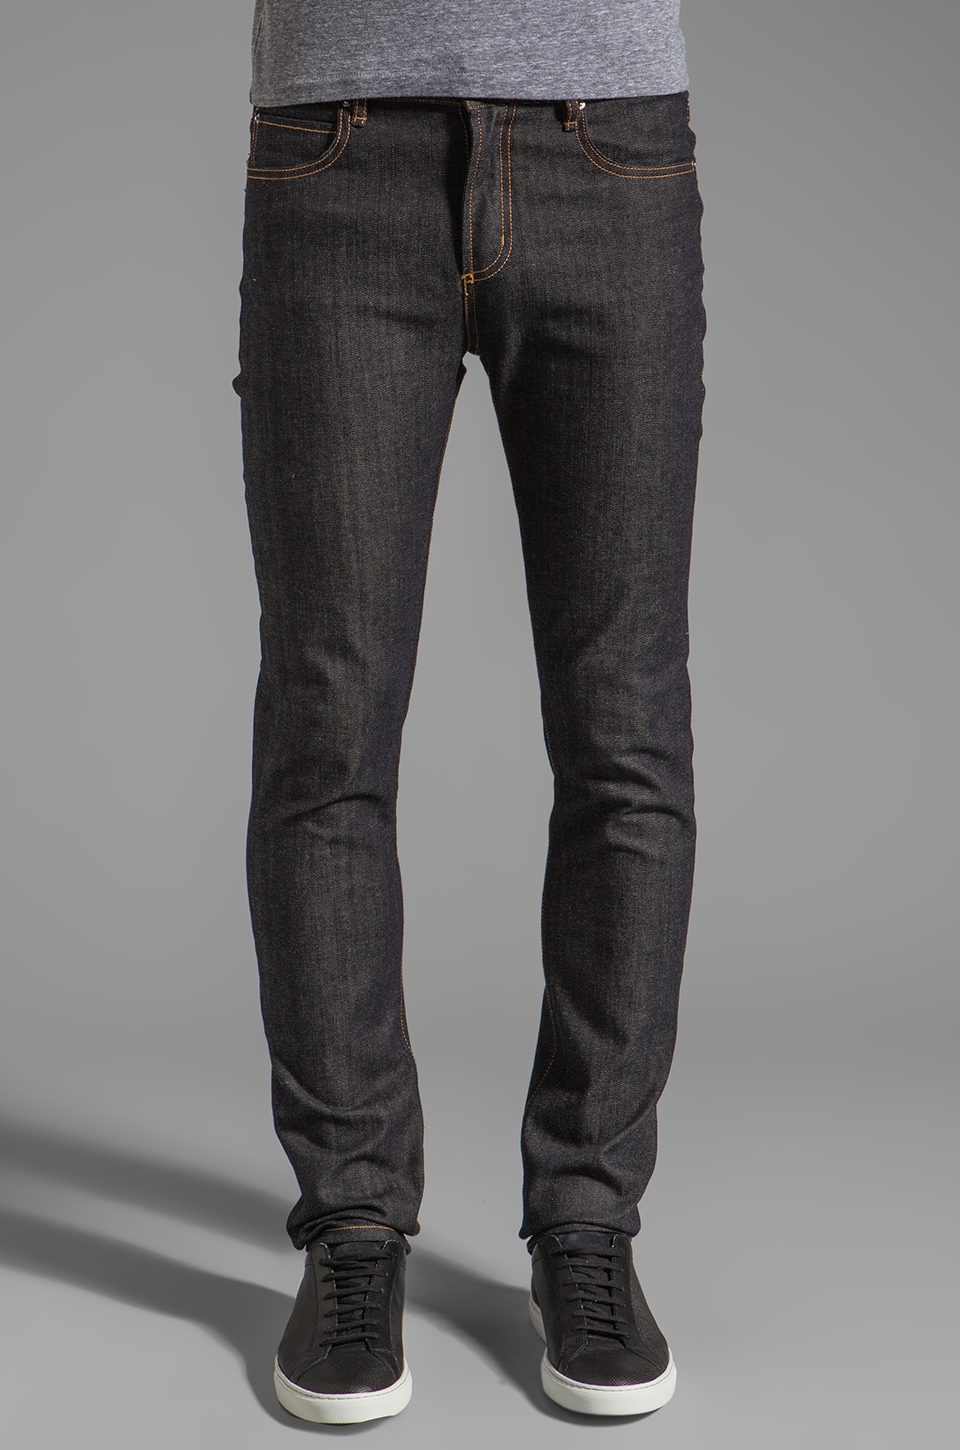 Obey Juvee Modern Denim in Raw Indigo